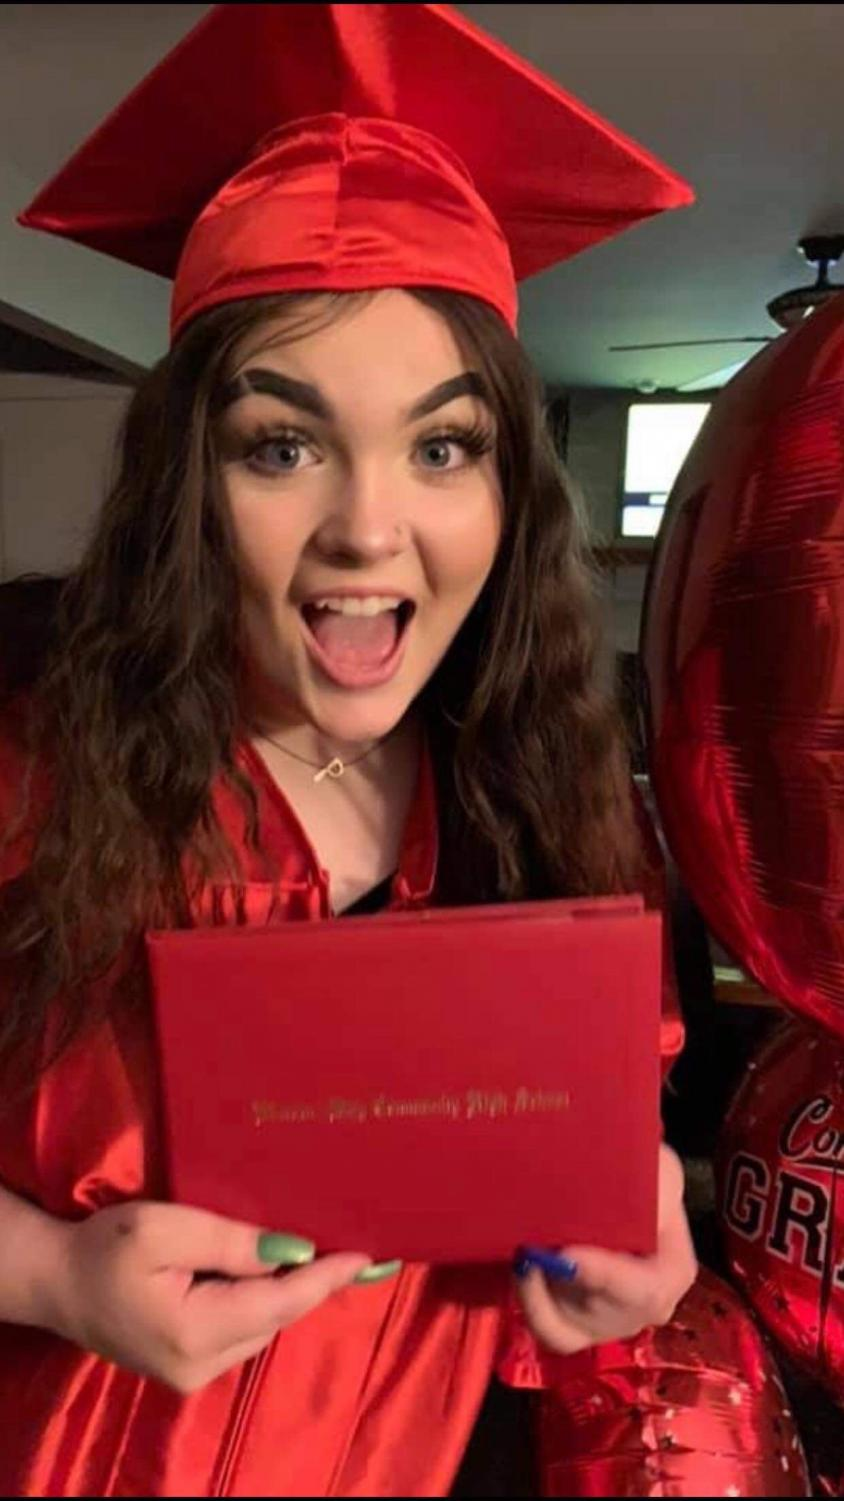 High school graduate close call to death after she develops Lung Impairment/ disease from vaping. Now recovering well with the aid of a portable ventilator, she is determined to advocate the dangers of vaping to the next generation. (Pictures Piper Johnson's)